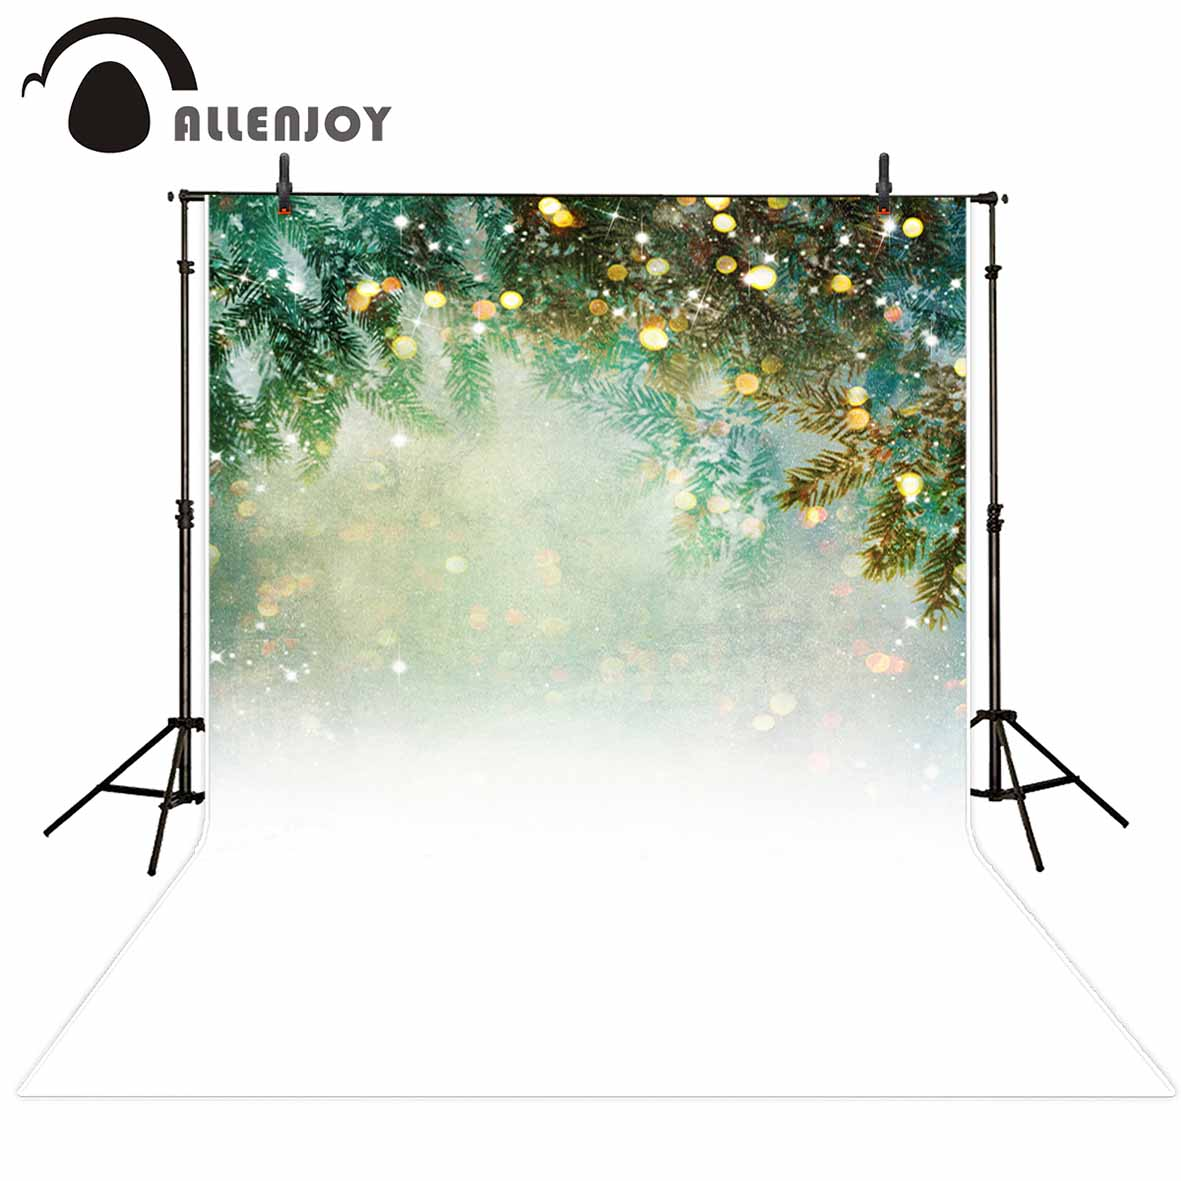 Allenjoy photography background glitter Bokeh Pine Snow Winter Theme backdrop photo background studio camera fotografica allenjoy photography background moon castle witch bat pumpkin halloween theme backdrop photo studio camera fotografica